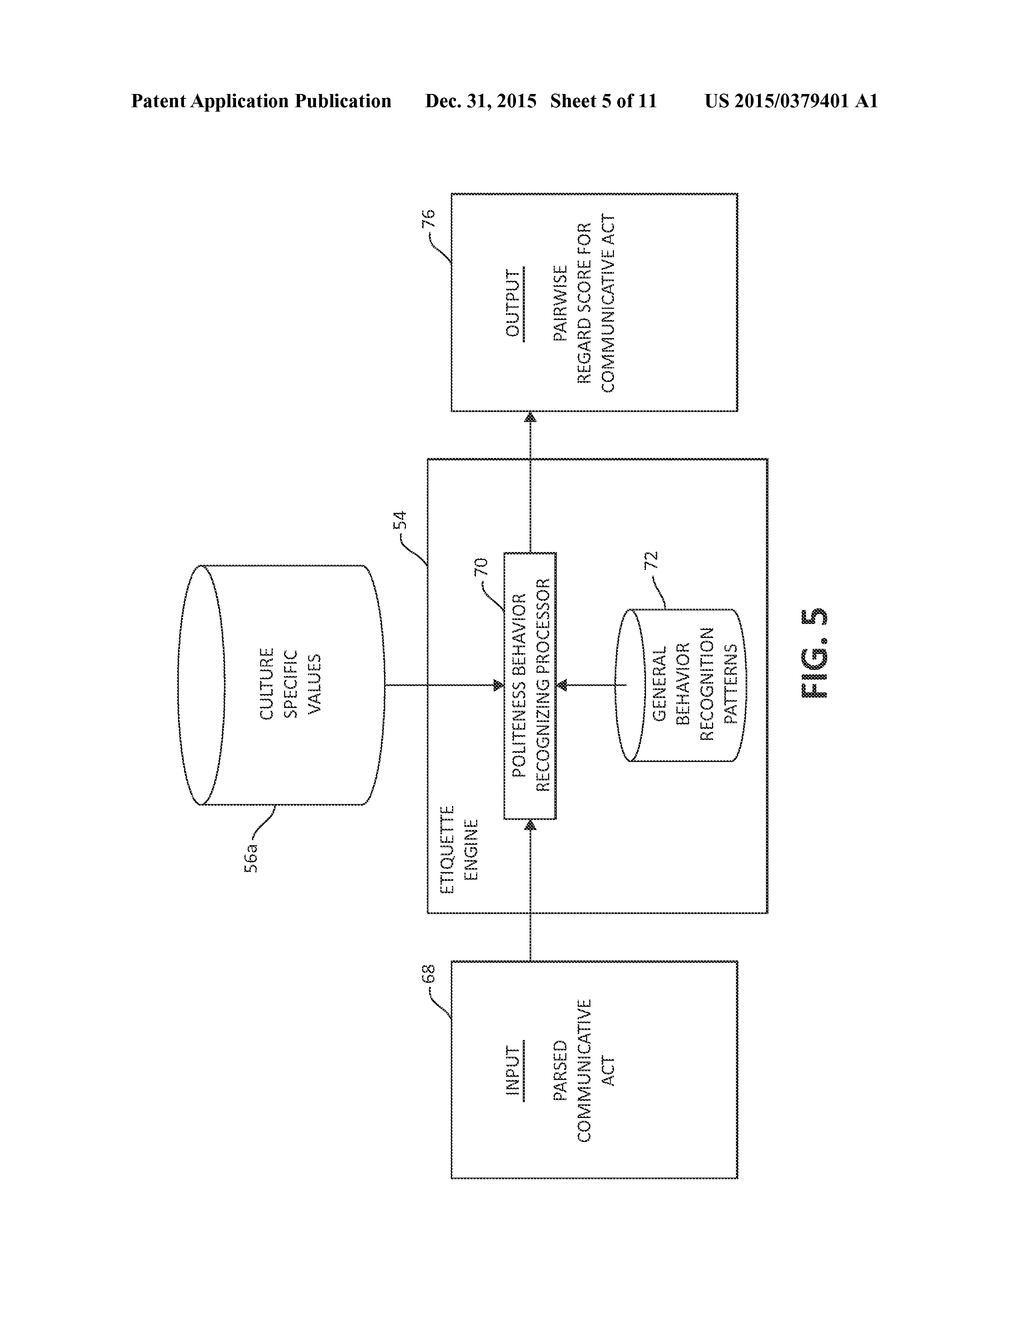 20150379401_06 systems and methods for determining social perception diagram